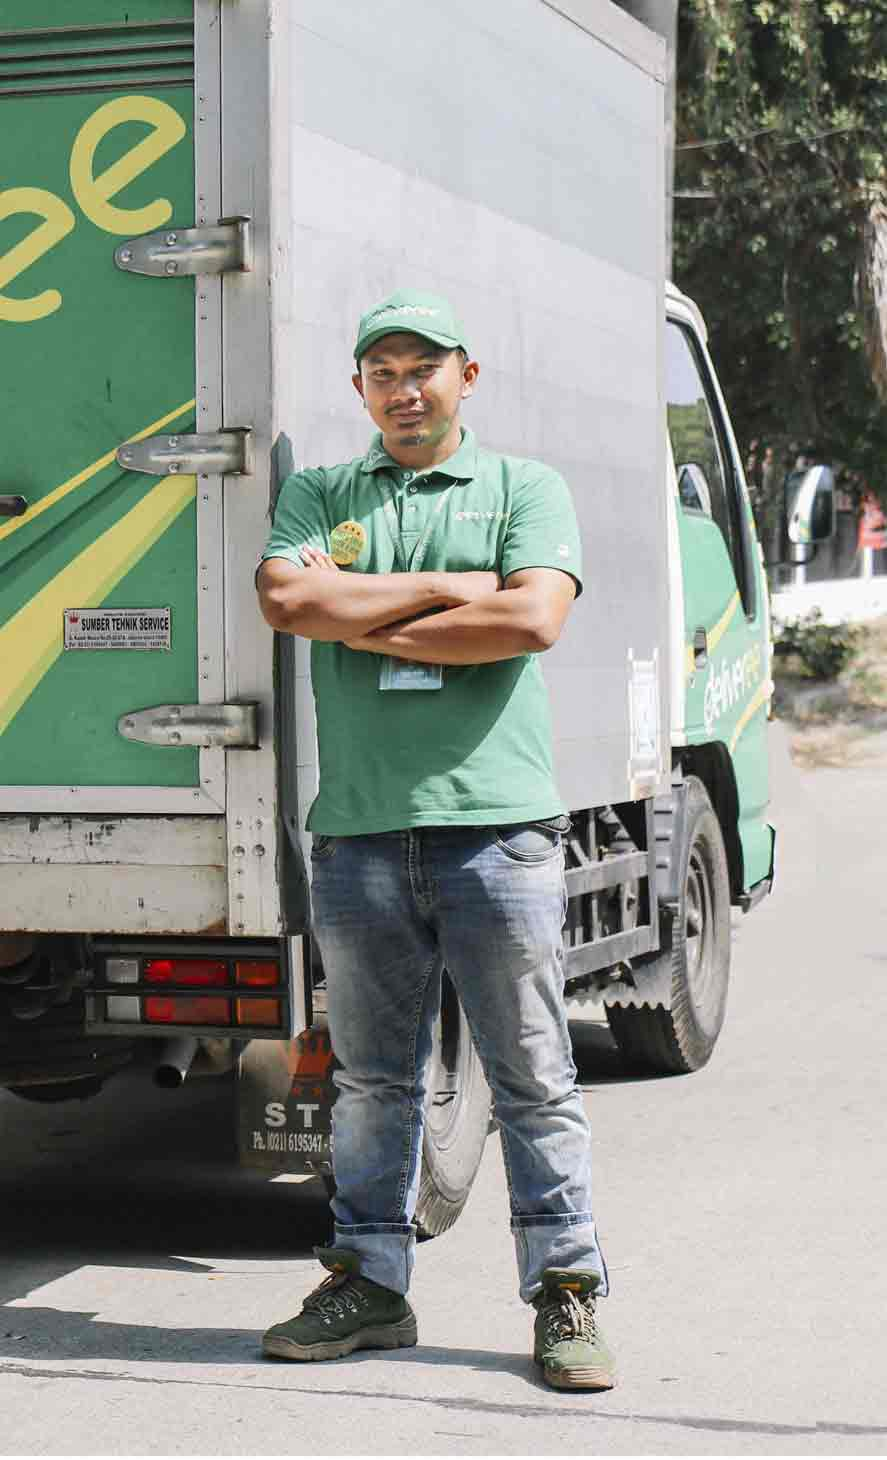 Deliveree Truck Driver Image